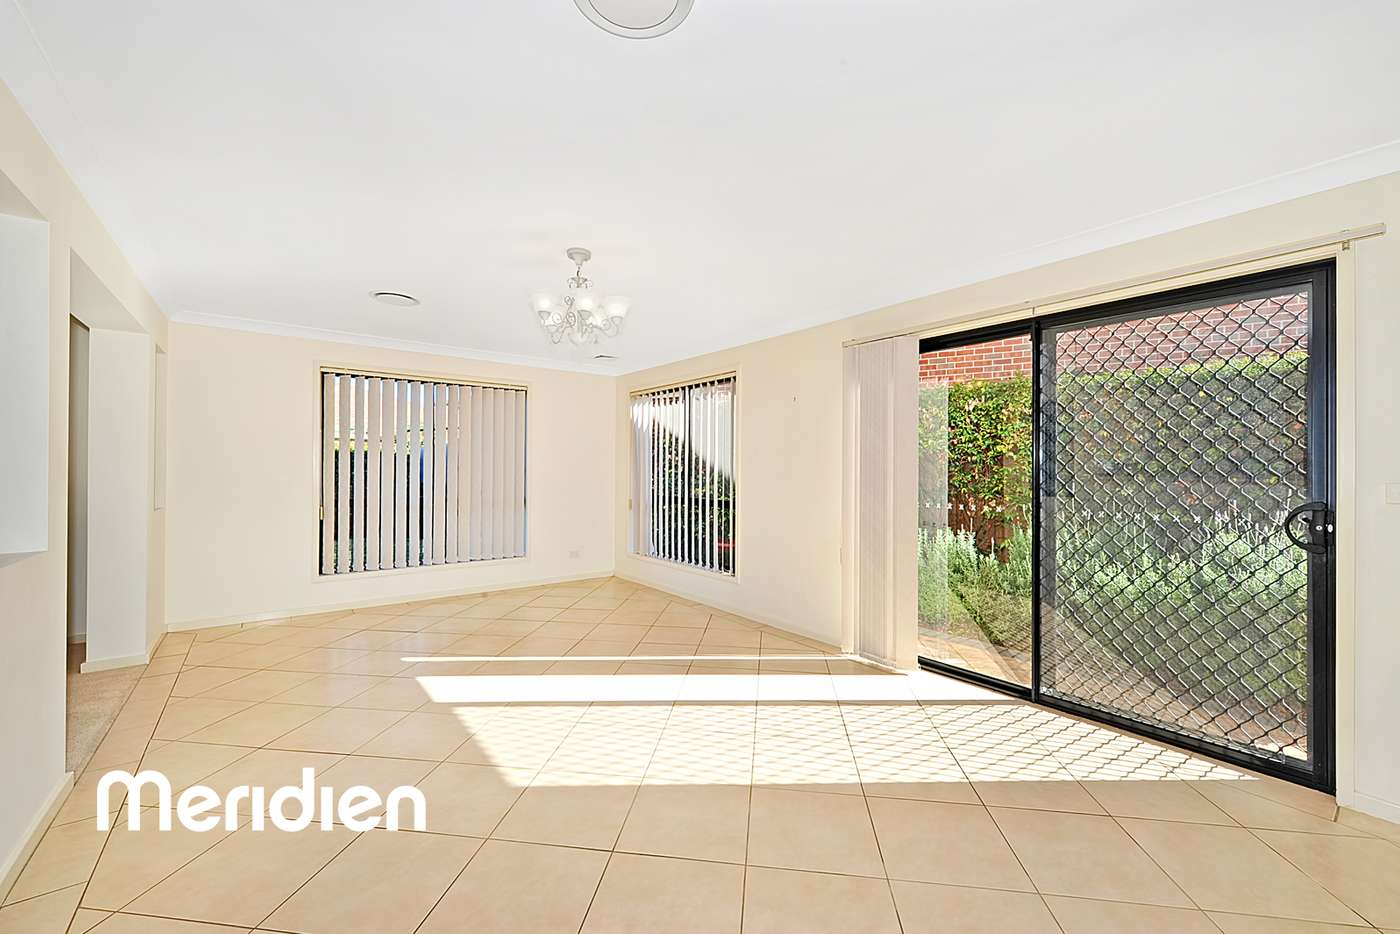 Seventh view of Homely house listing, 64 Milford Drive, Rouse Hill NSW 2155